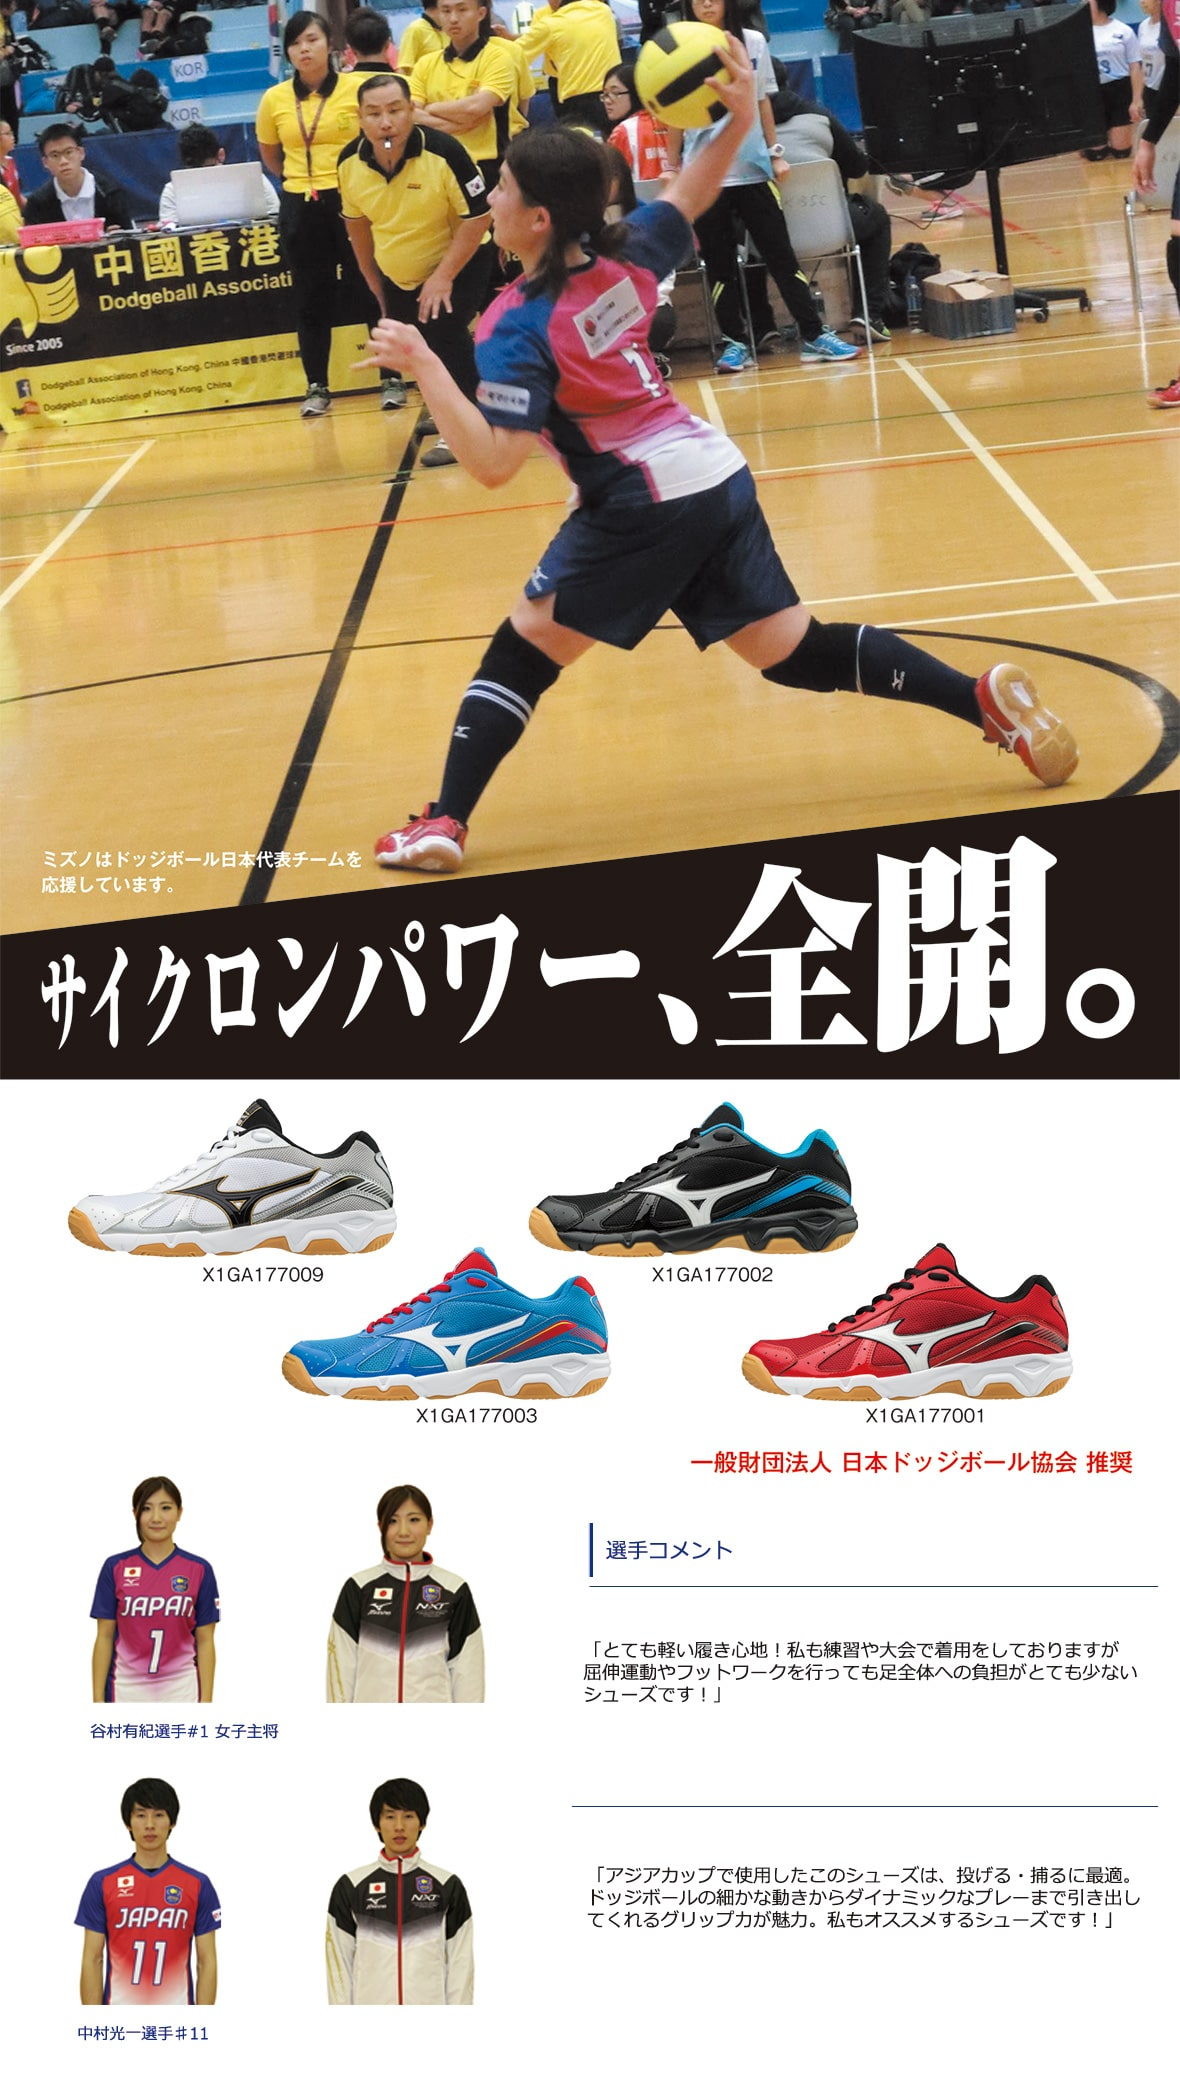 mizuno volleyball shoes japan house